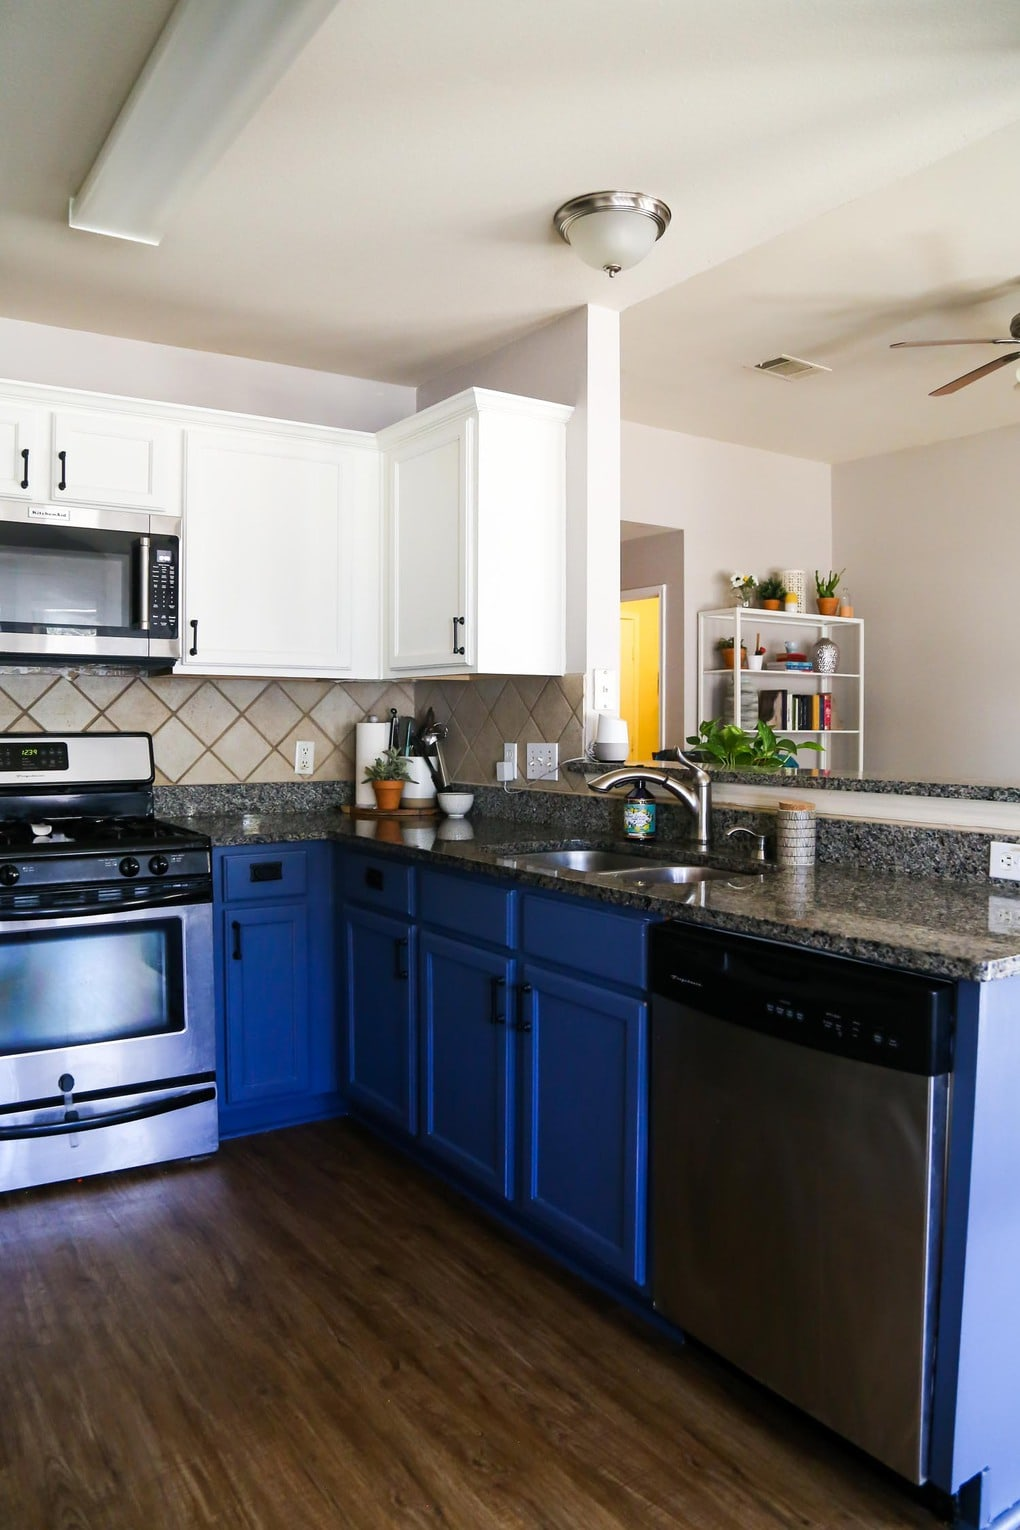 cost of painting kitchen cabinets professionally 33x19 sink mohawk vinyl plank flooring (review, faqs, and more!)